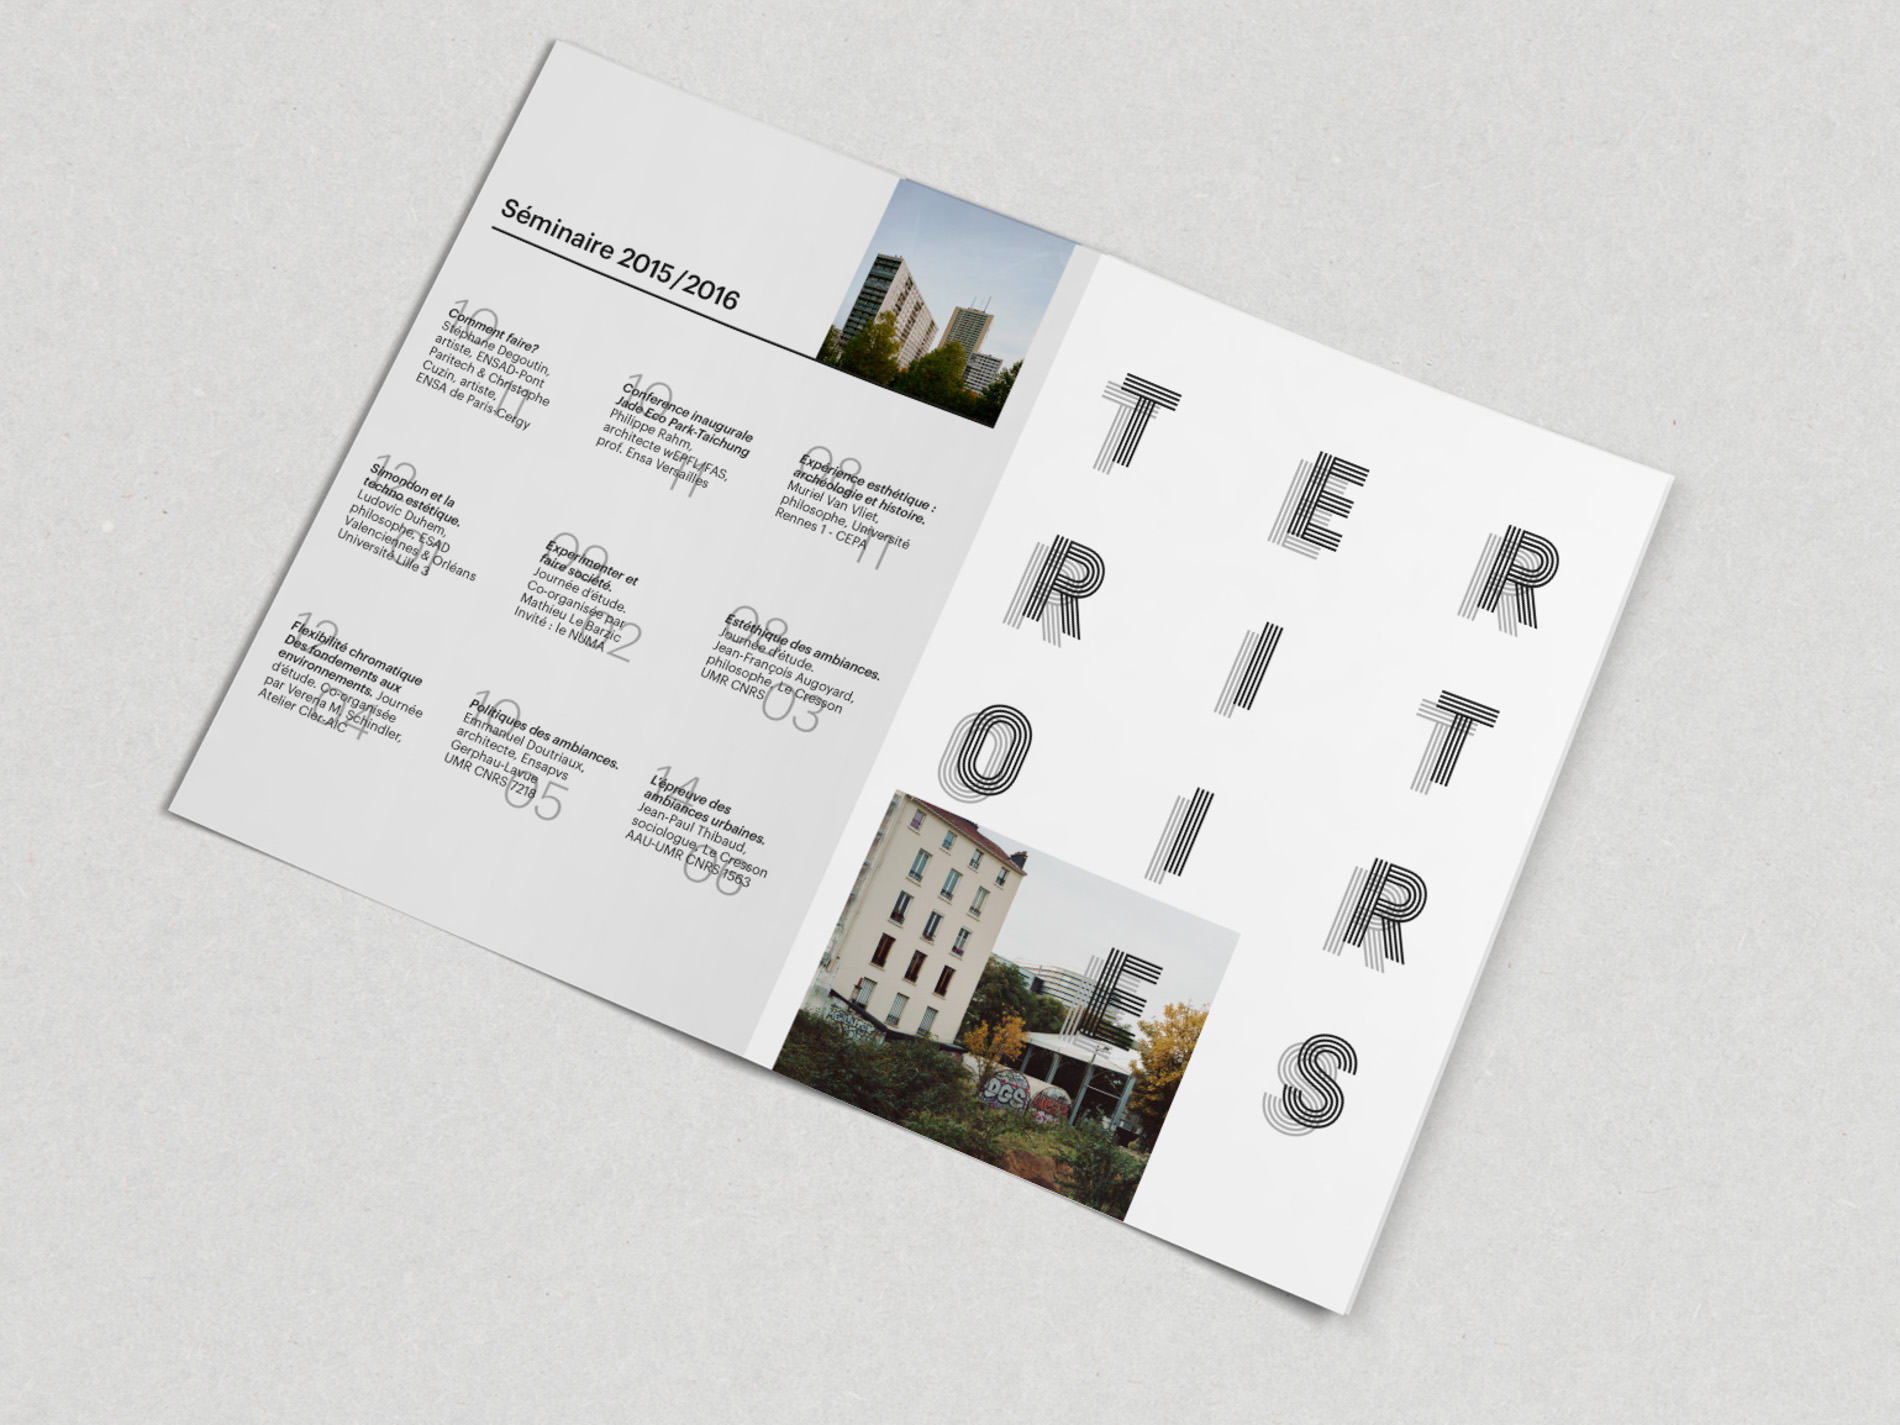 Territoires Esthétiques  1st edition poster for lecture series | Photography Giaime Meloni | Graphic design Roberta Donatini